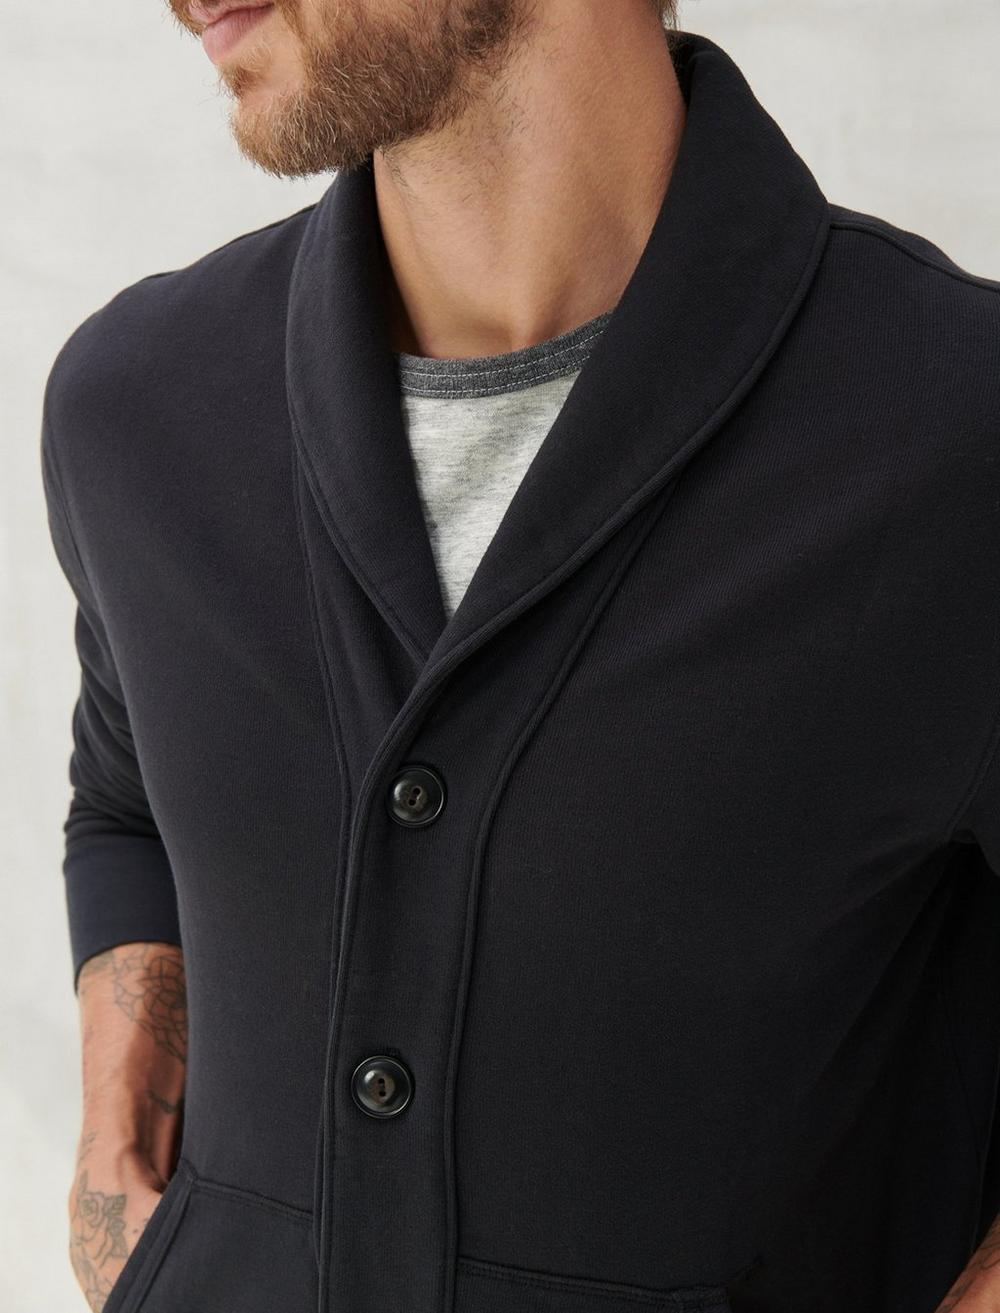 SUEDED TERRY CARDIGAN, image 5